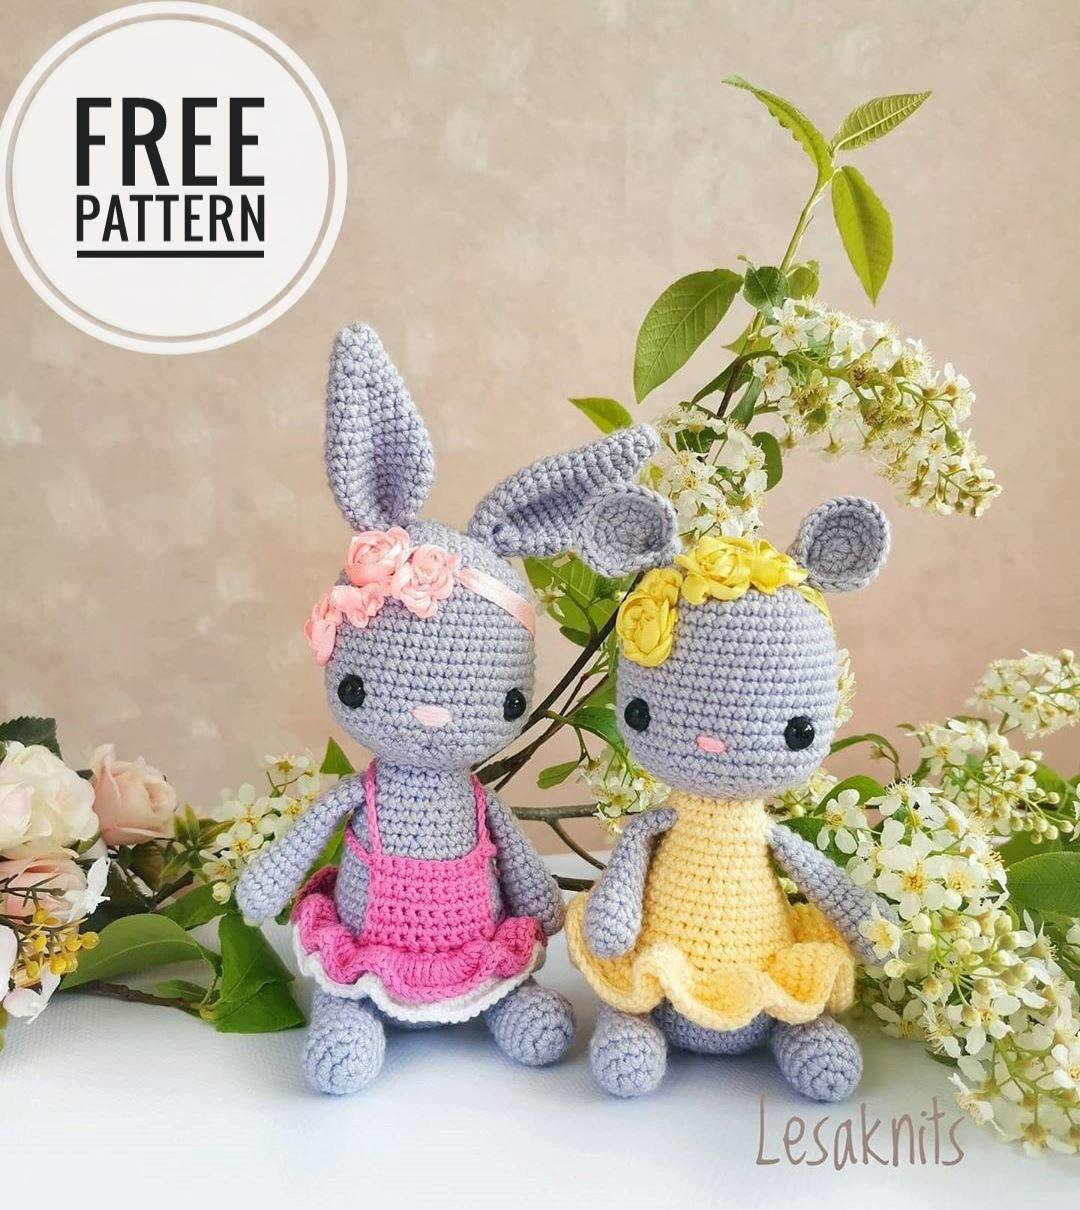 Crochet bunny and mouse amigurumi pattern